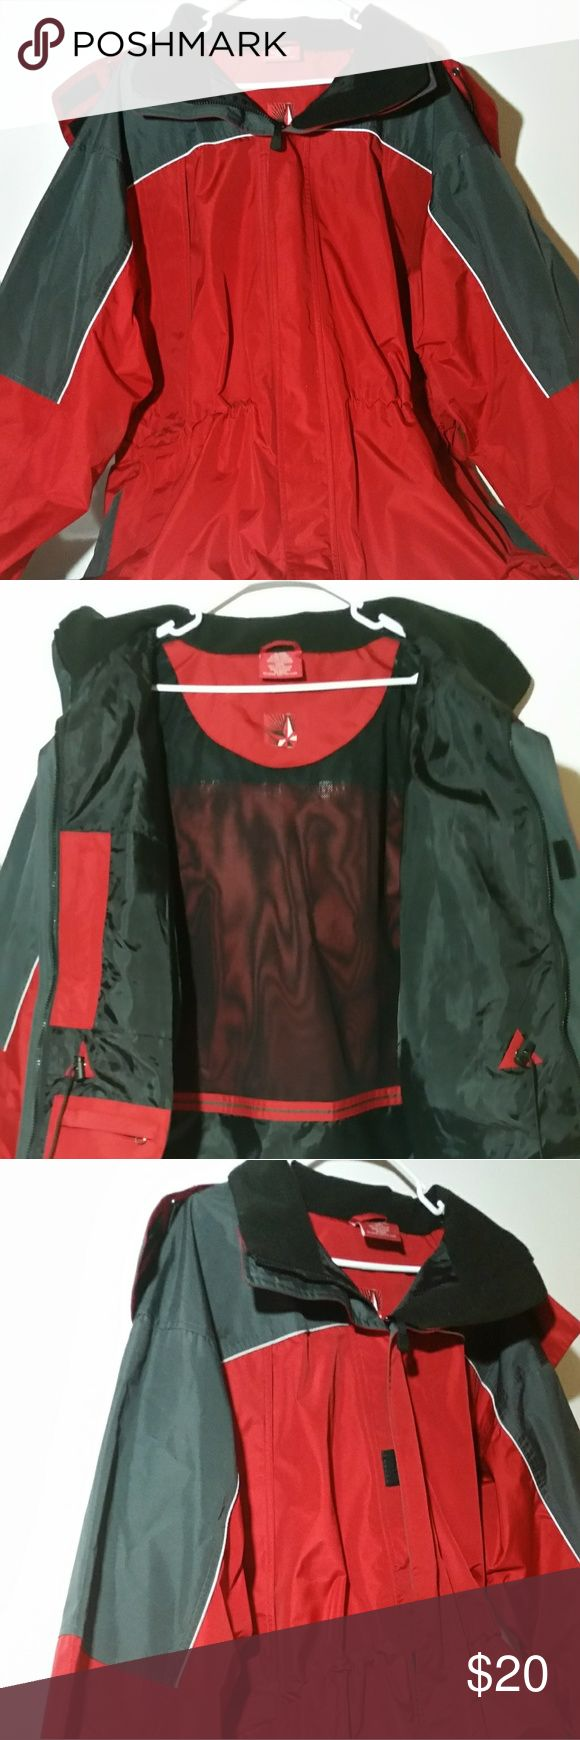 Awesome men's Raincoat Up for grabs is this Awesome MARLBORO Adventure Team heavy duty Red XL raincoat. This coat is in excellent pre-owned condition. marlboro Jackets & Coats Raincoats